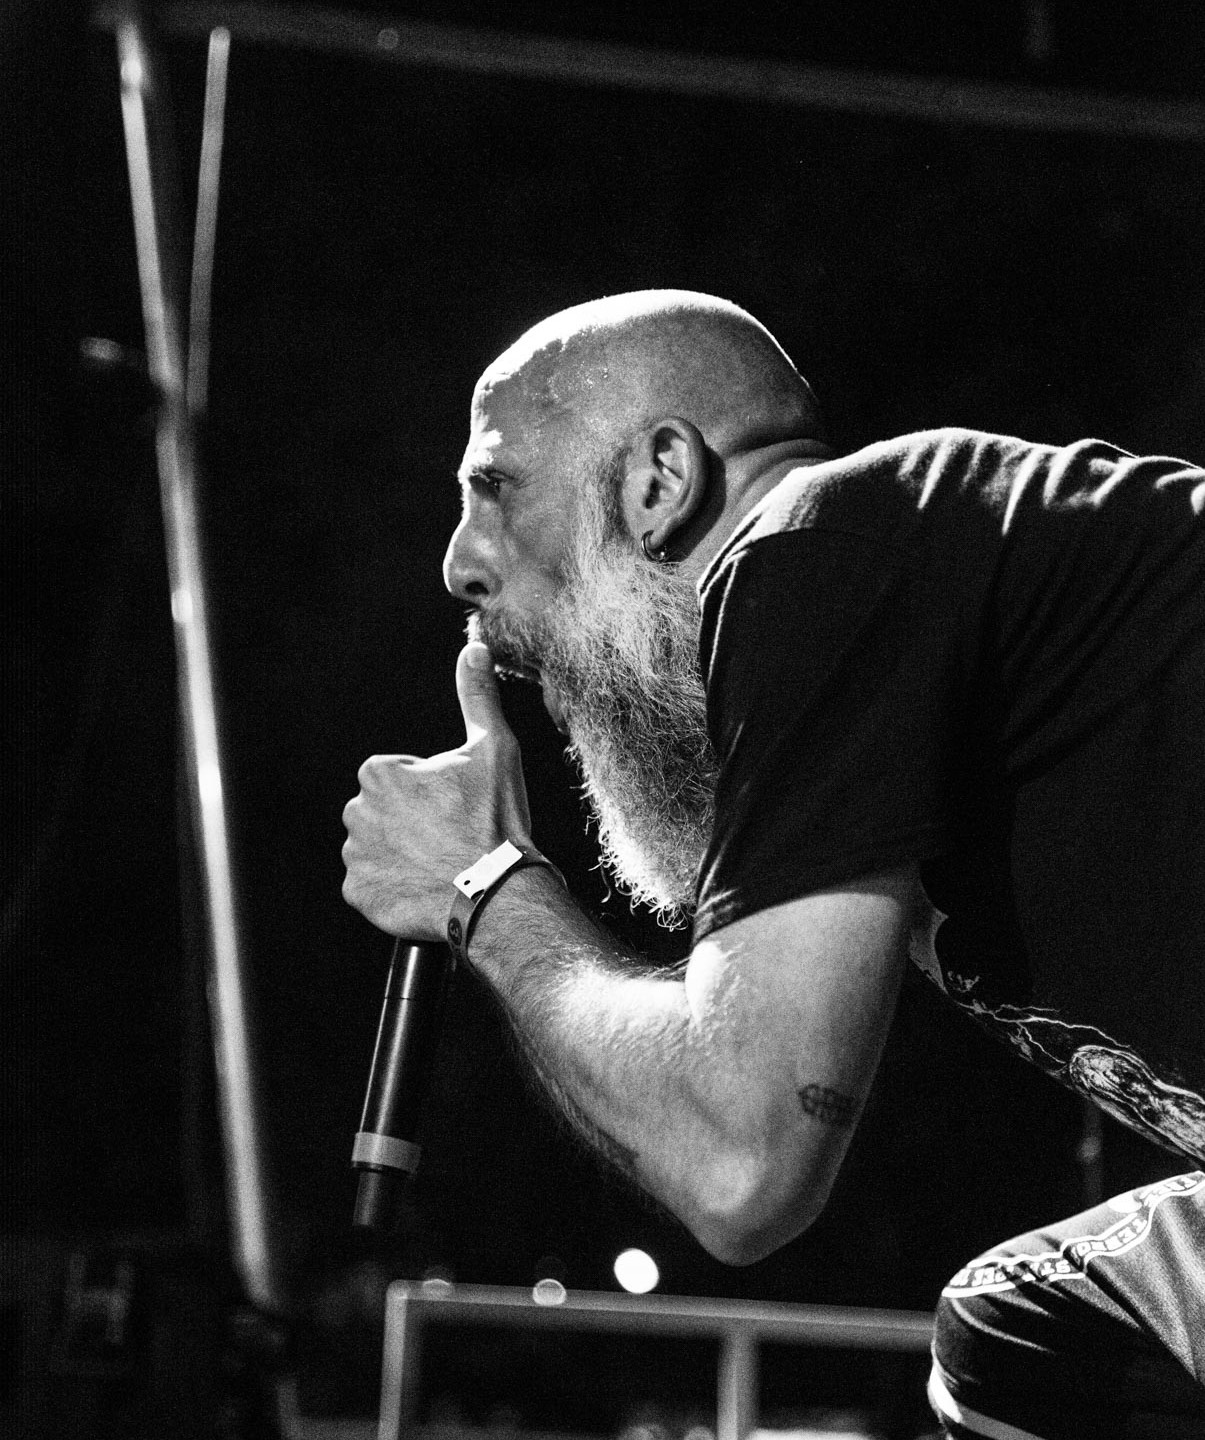 Black Bomb A @ Sylak Open Air festival, Saint Maurice de Gourdans, France, August 2017.  On assignment for Metal Obs' Magazine All rights reserved.